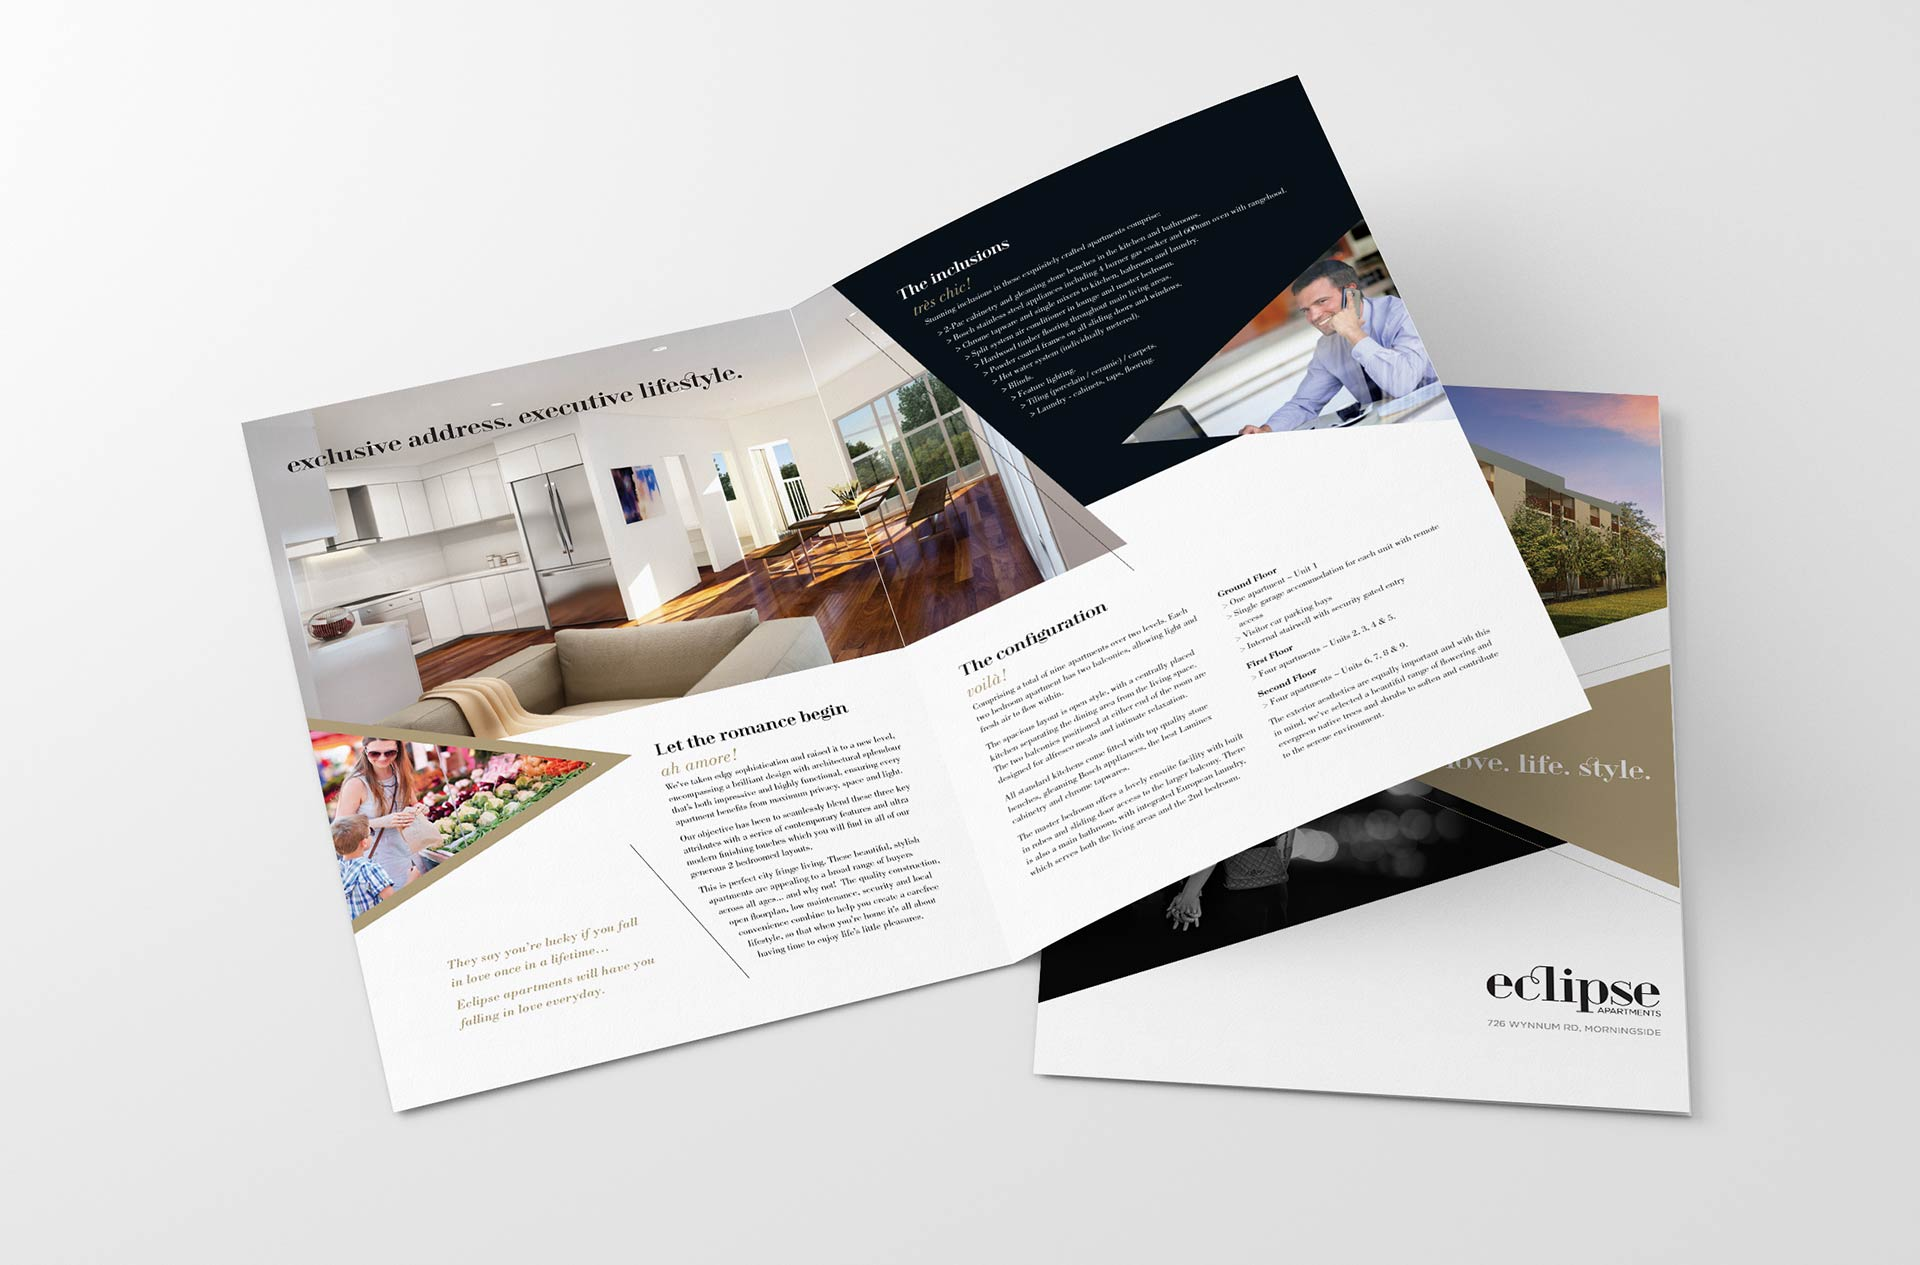 Eclipse Apartments Sales Brochure